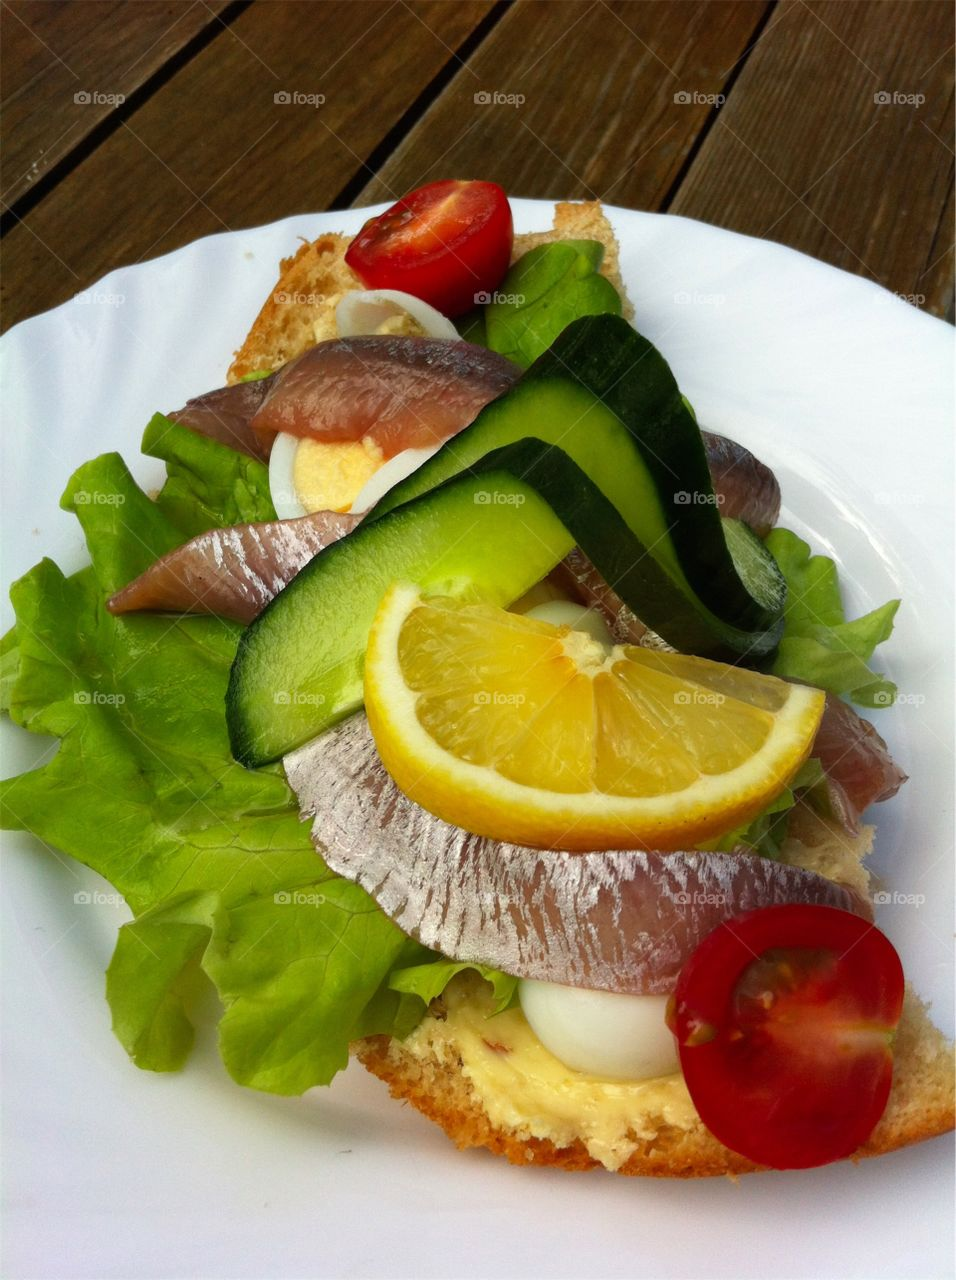 Sandwich with egg and anchovies and vegetables on white plate on wooden table outdoors.